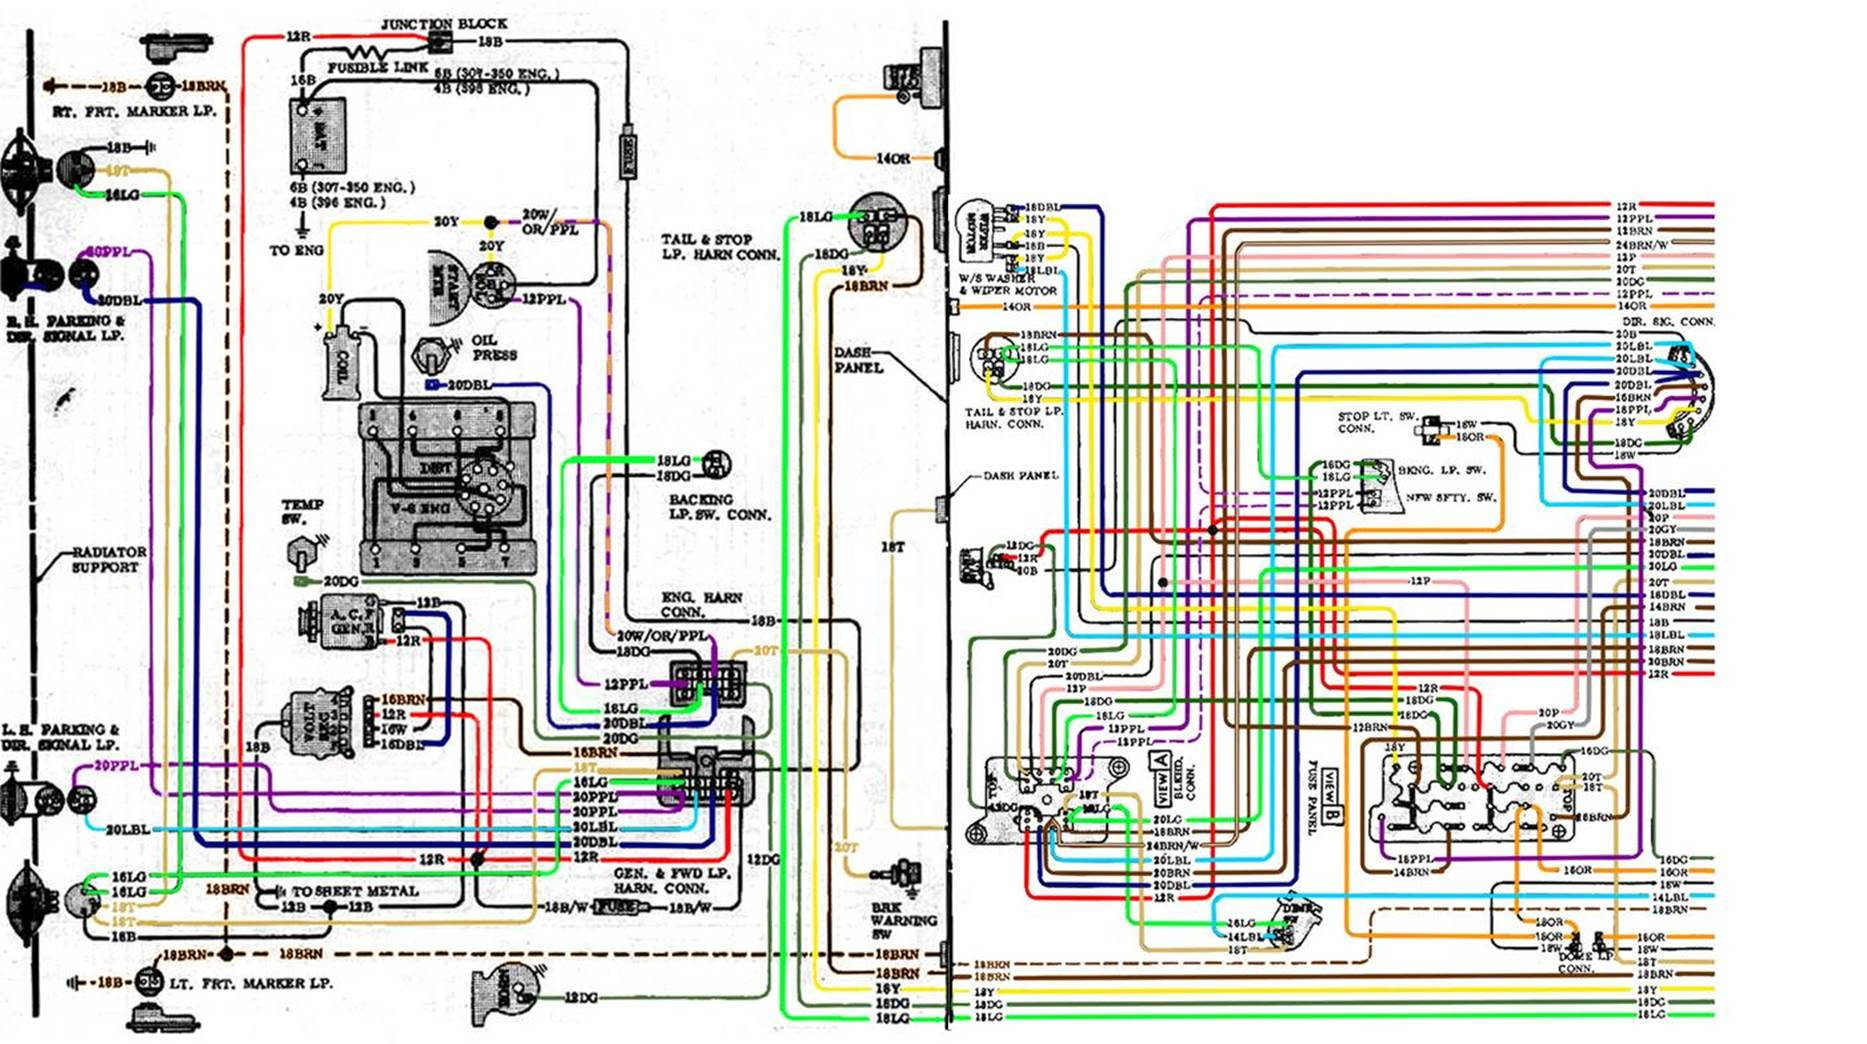 image002 67 72 chevy wiring diagram 1967 chevelle wiring diagram at creativeand.co